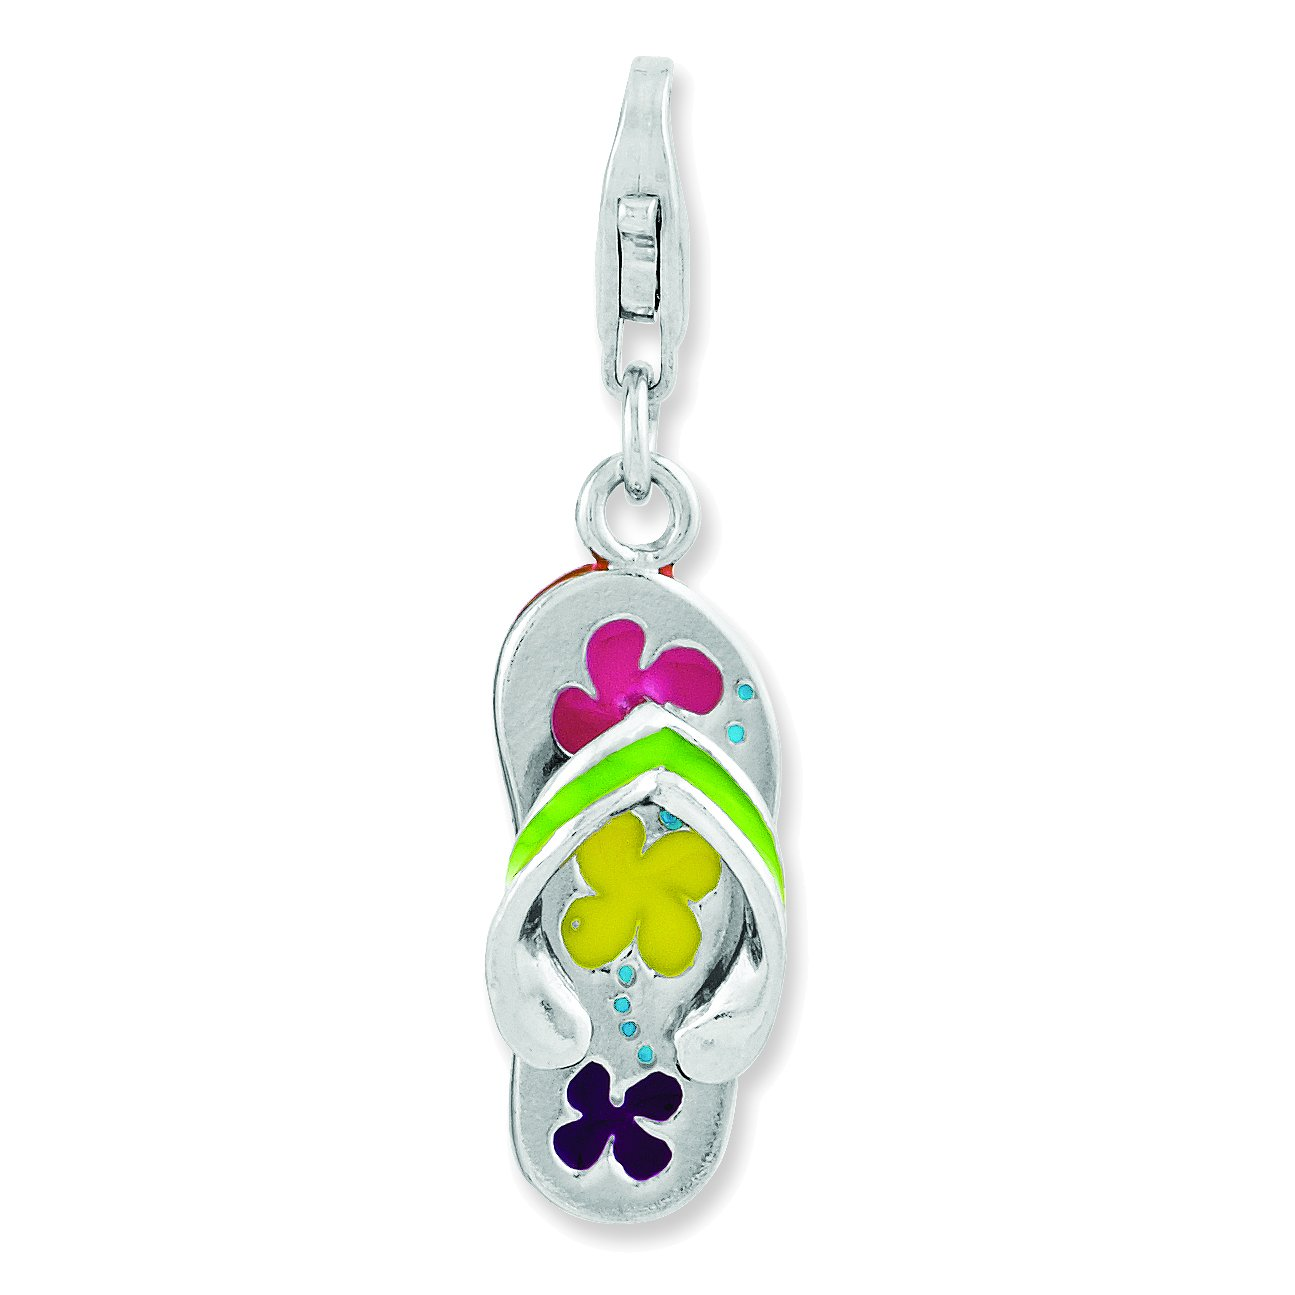 Amore La Vita Sterling Silver 3-D Enameled Flip-flop with Lobster Clasp Charm